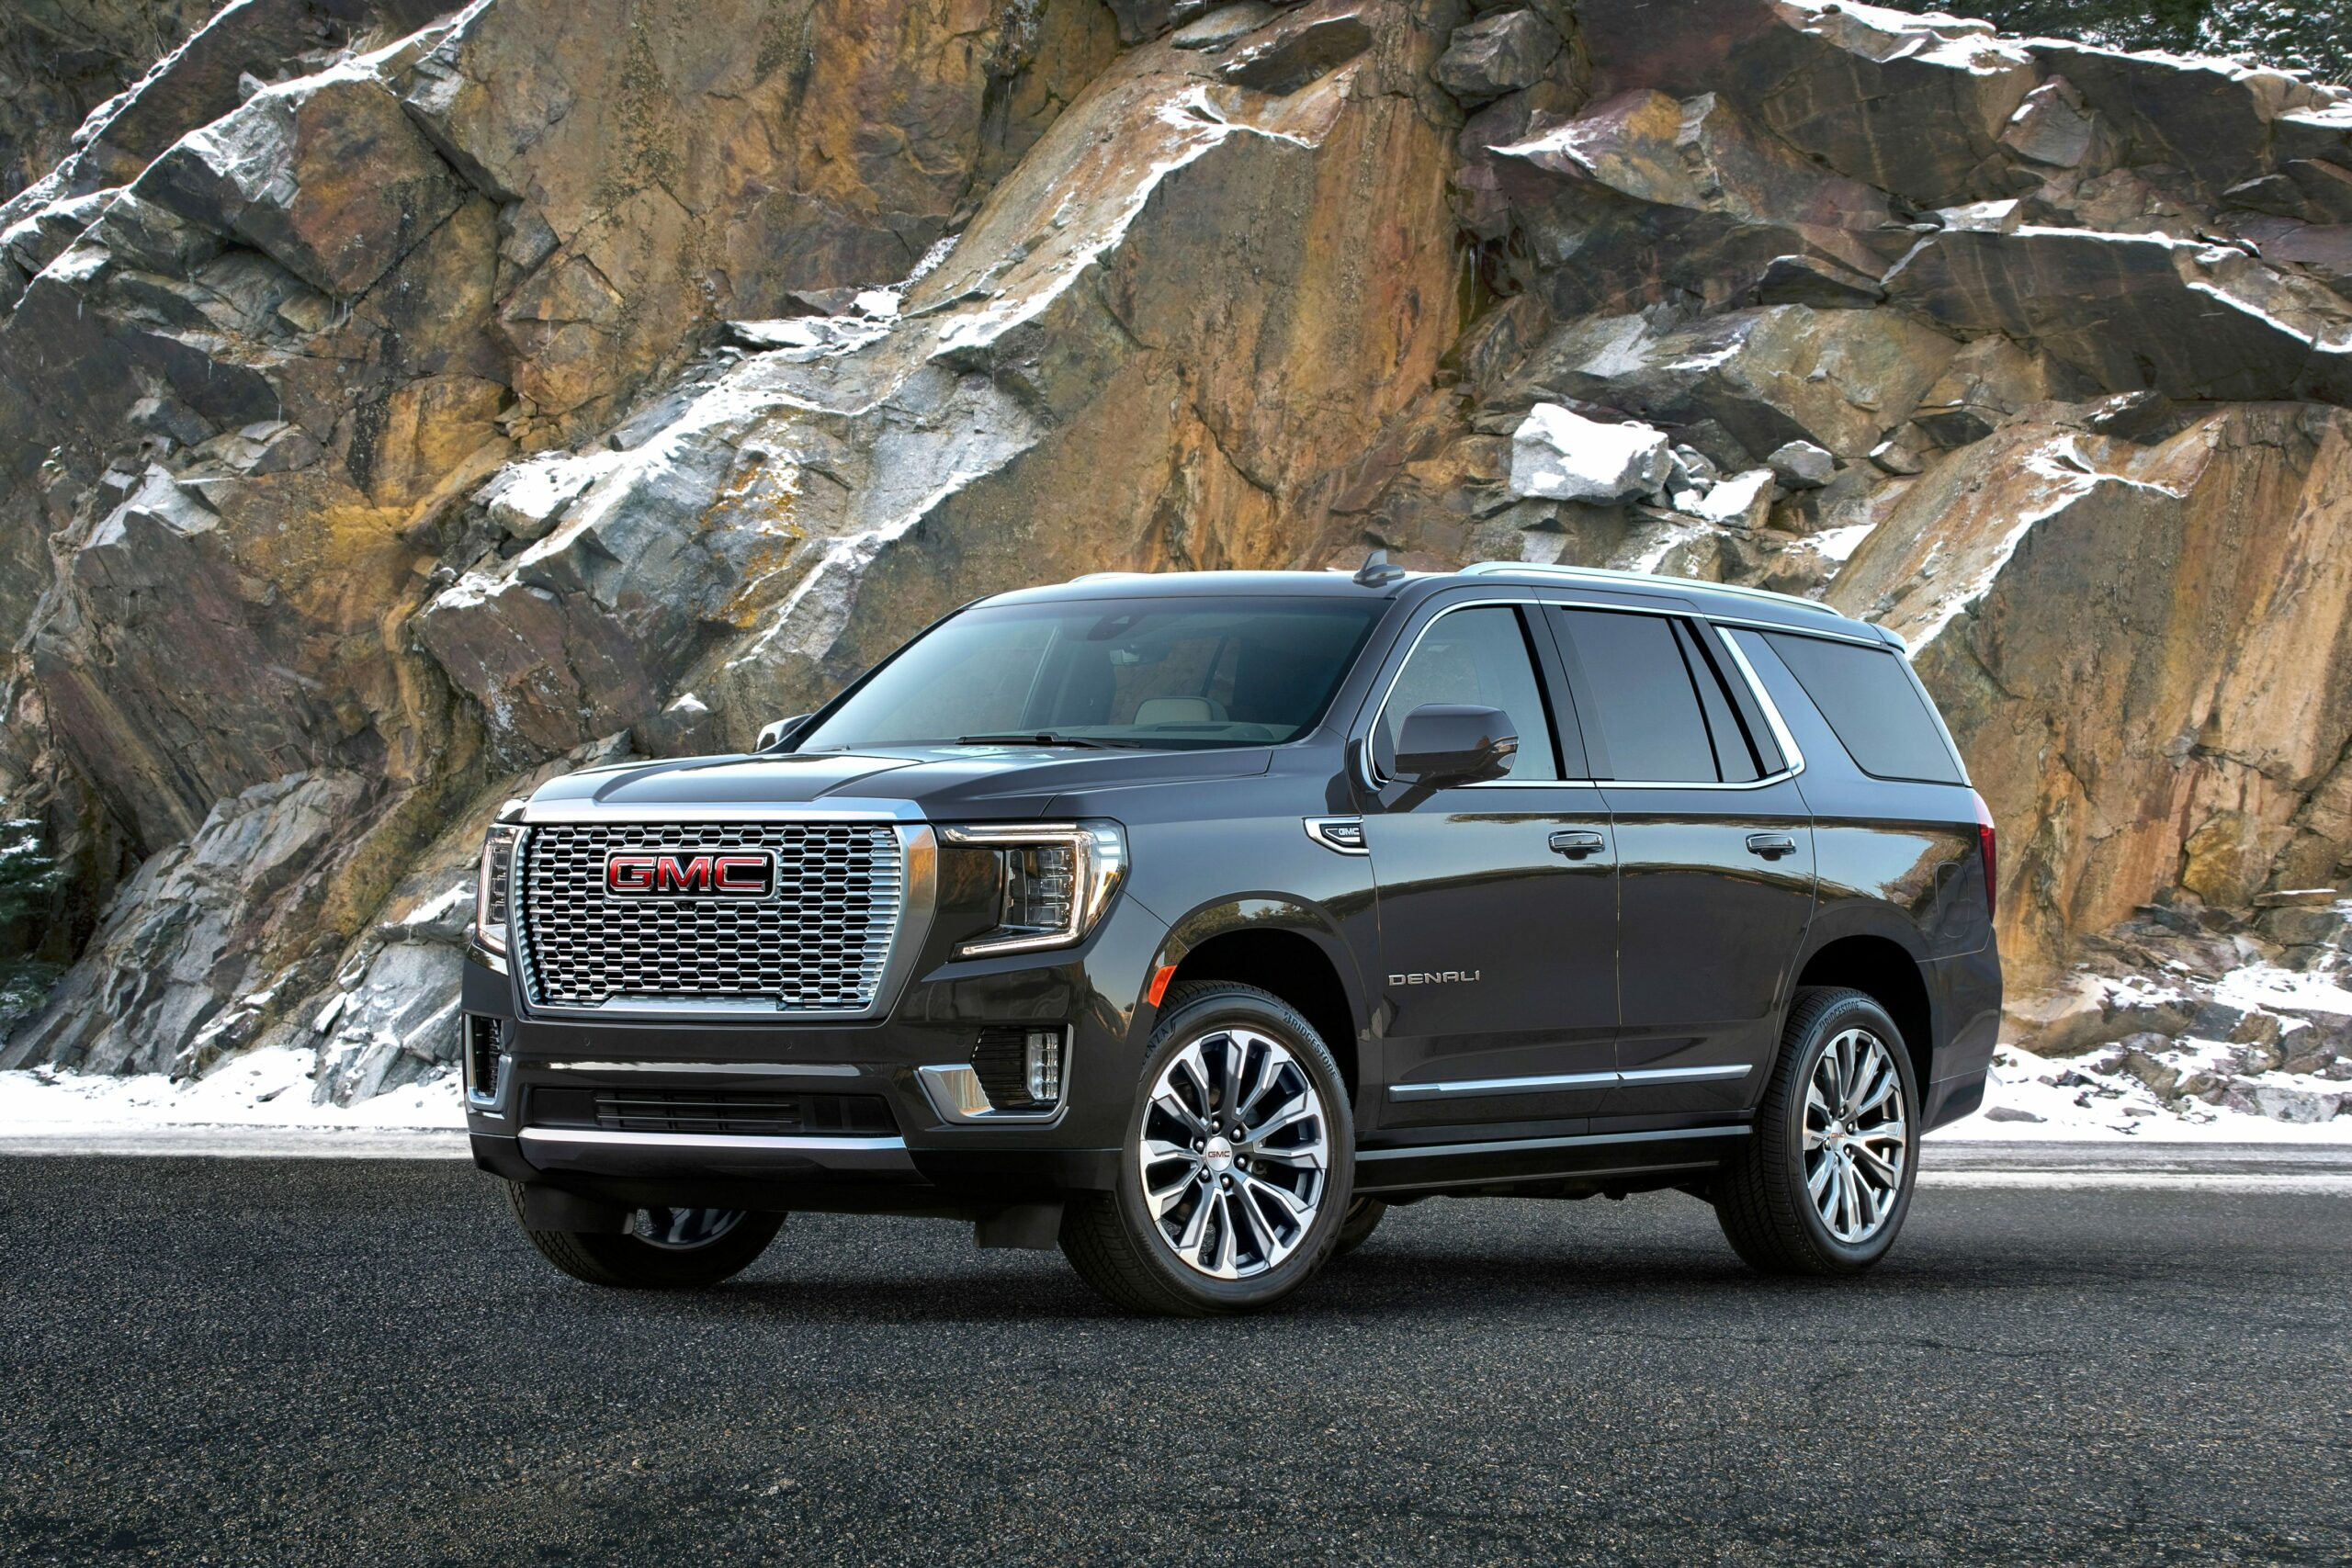 GMC SUV 2021 Price and Review